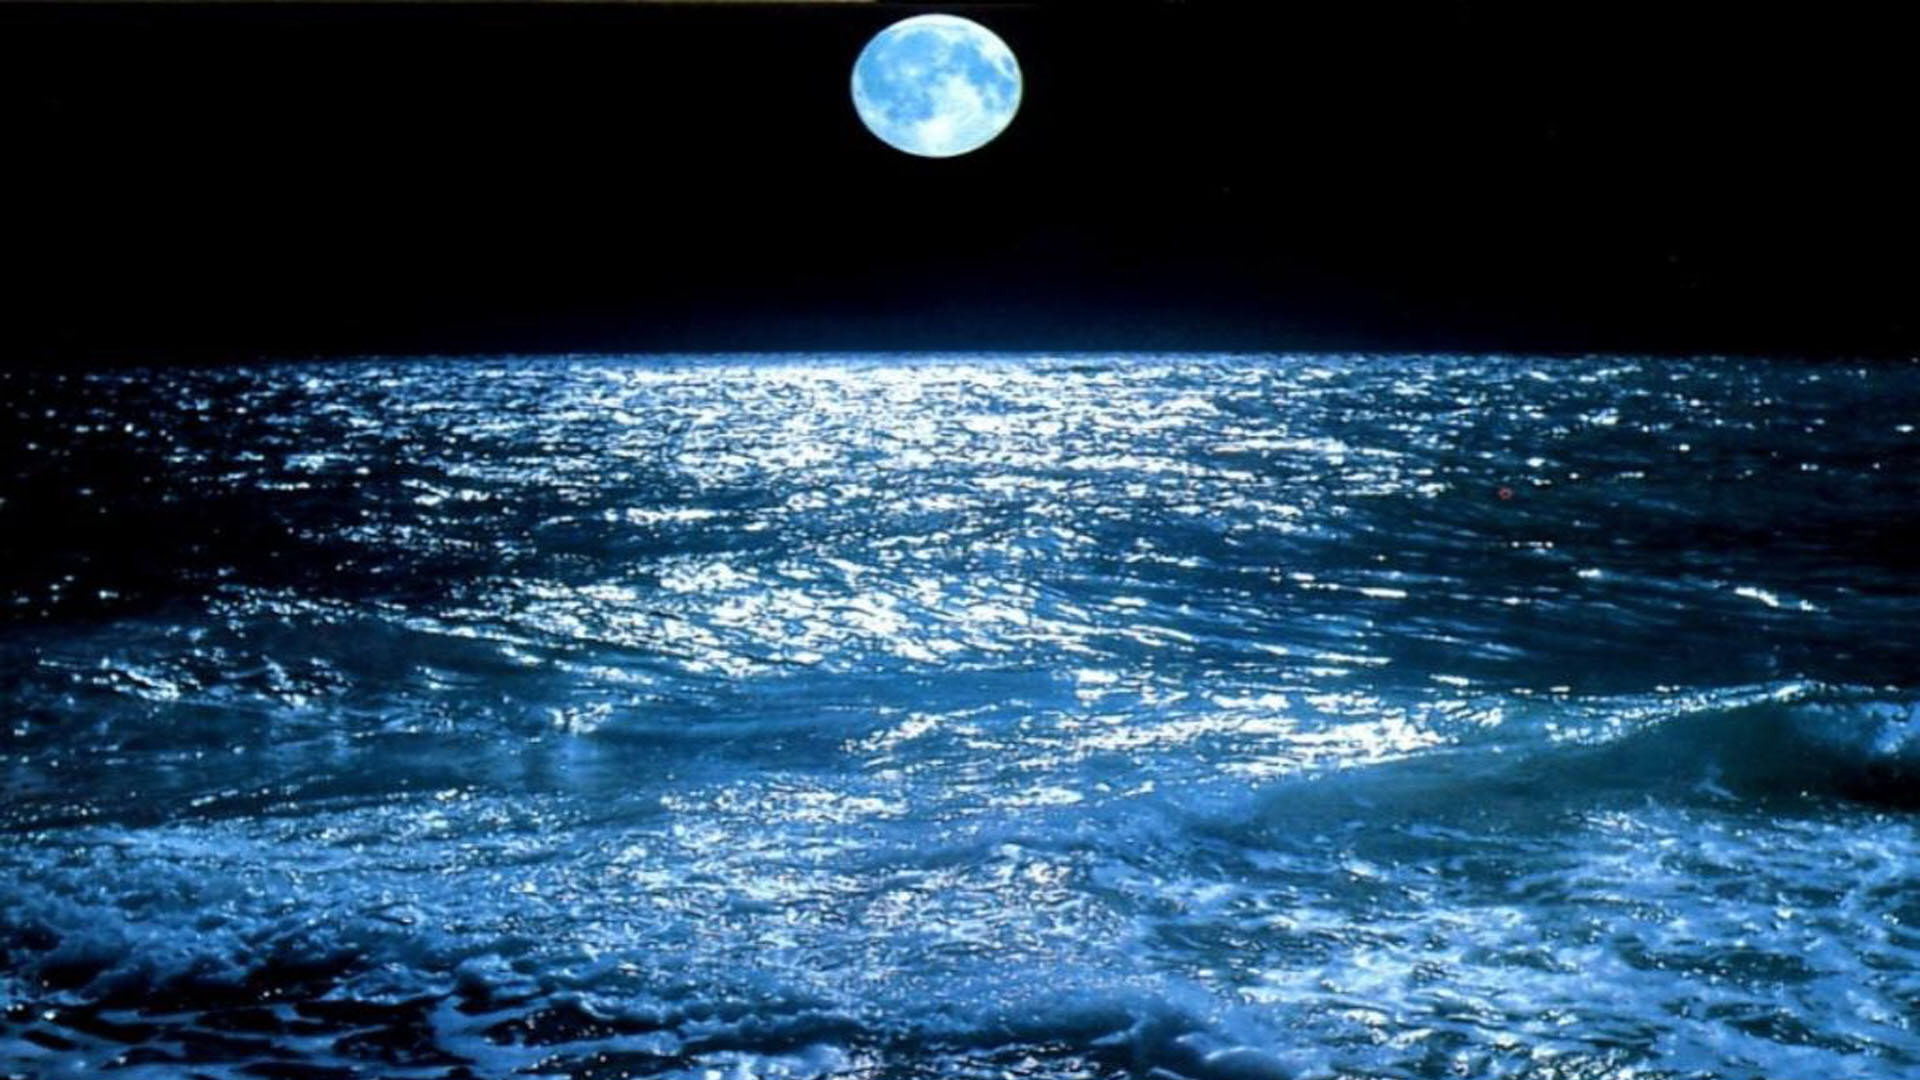 night ocean wallpaper 65 images